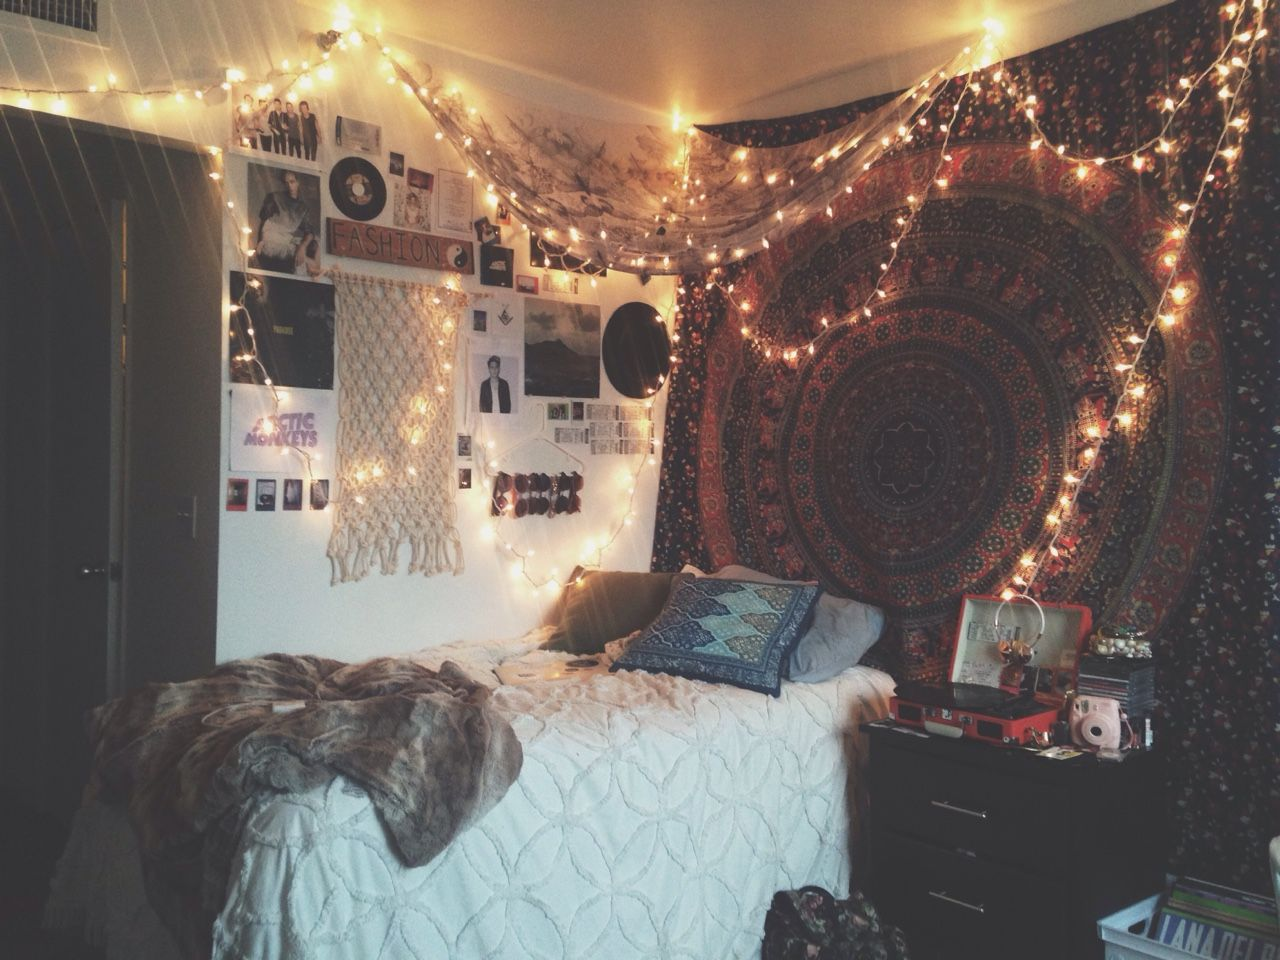 College dorm room tumblr - Love Awesome Boho Indie College Los Angeles California Amazing Bohemian Alternative Arctic Monkeys San Francisco Urban Outfitters Apartment Ic Dorm Dorm